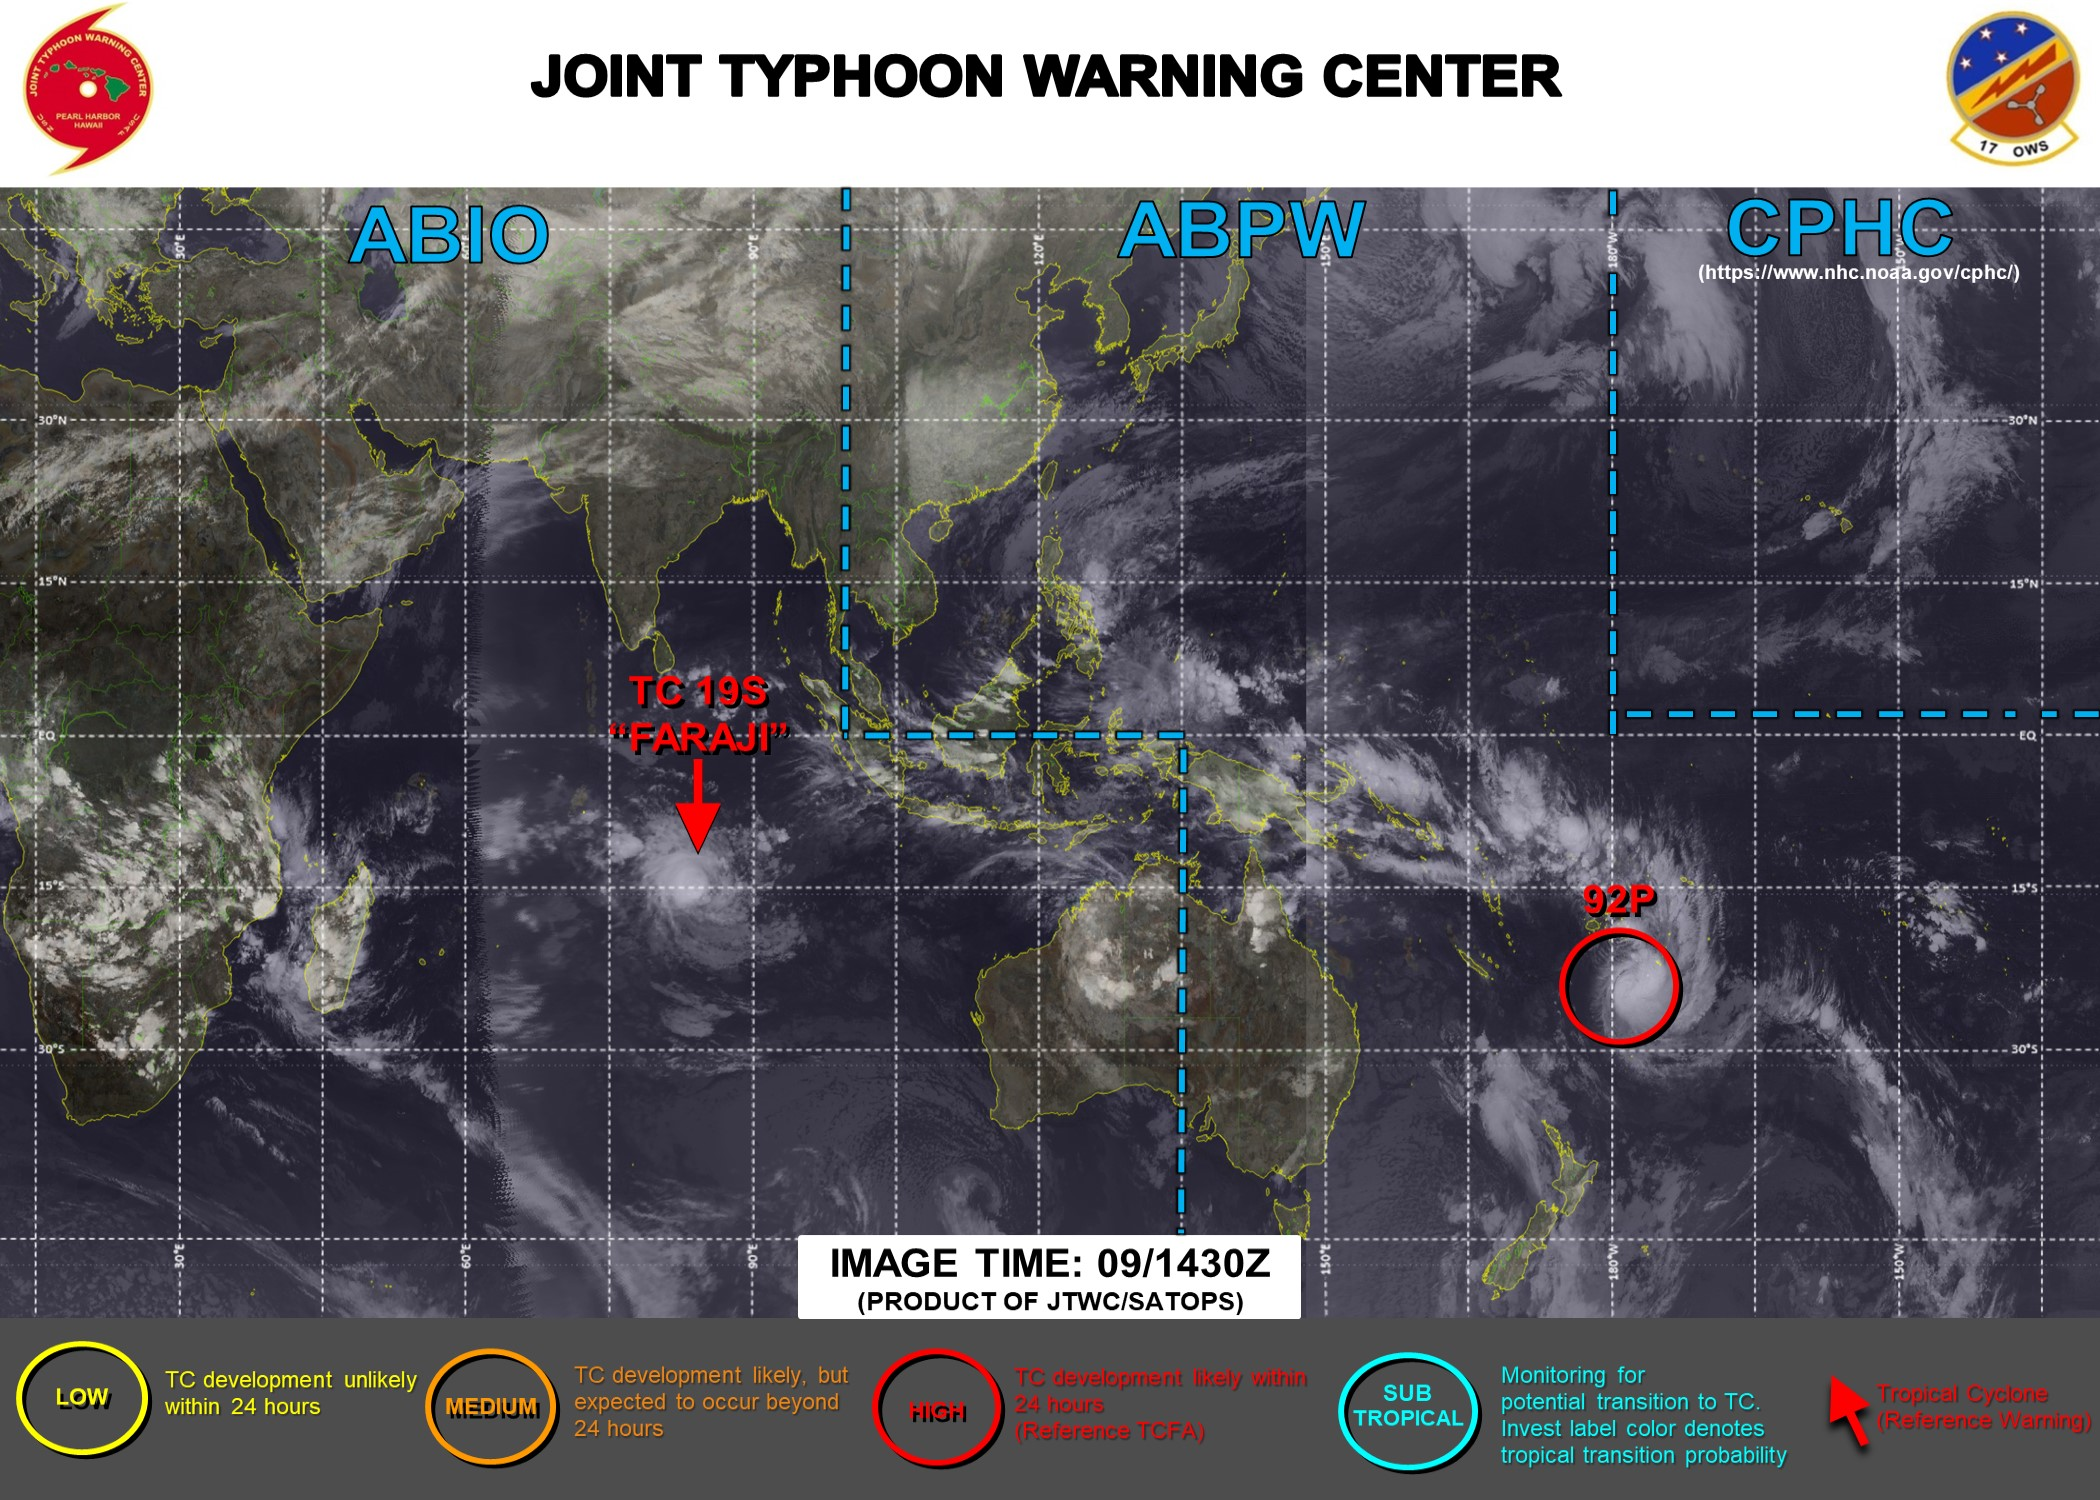 09/02 1730UTC. JTWC HAS BEEN ISSUING 12HOURLY WARNINGS ON 19S(FARAJI). INVEST 92P IS STILL HIGH. 3HOURLY SATELLITE BULLETINS ARE PROVIDED FOR BOTH 19S AND 92P.